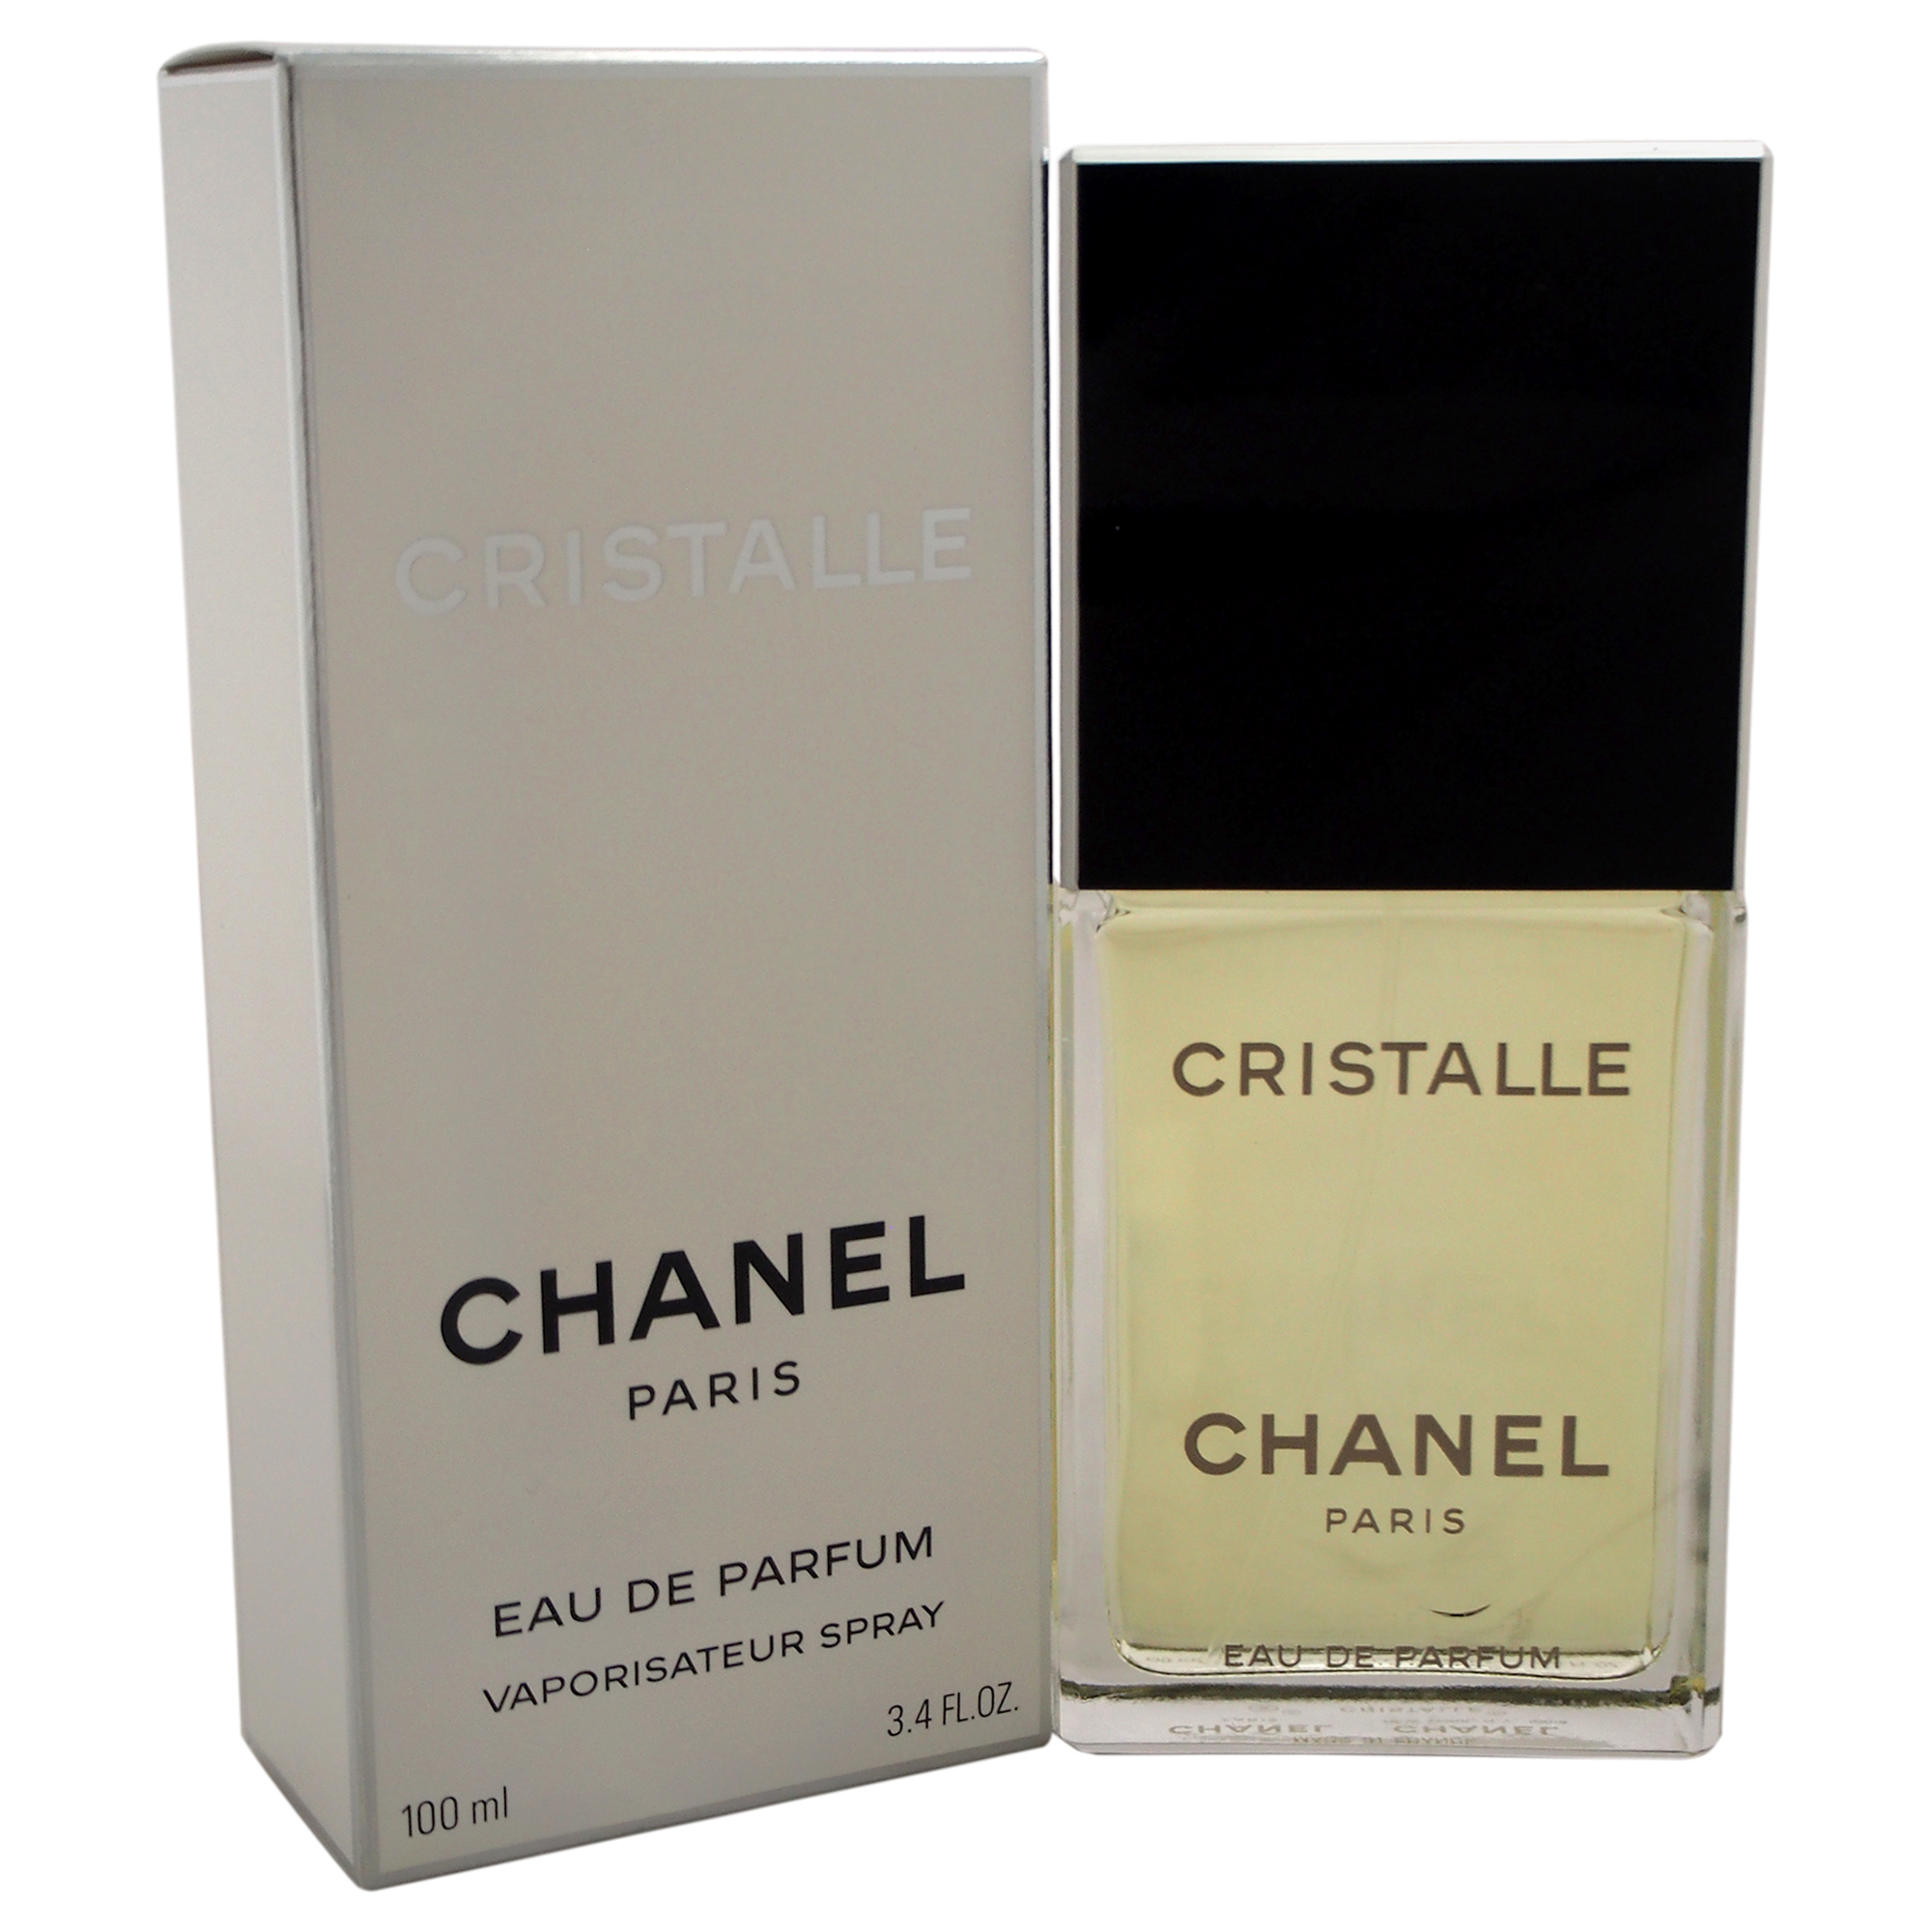 Chanel - Cristalle Eau De Parfum Spray 100ml/3.4oz